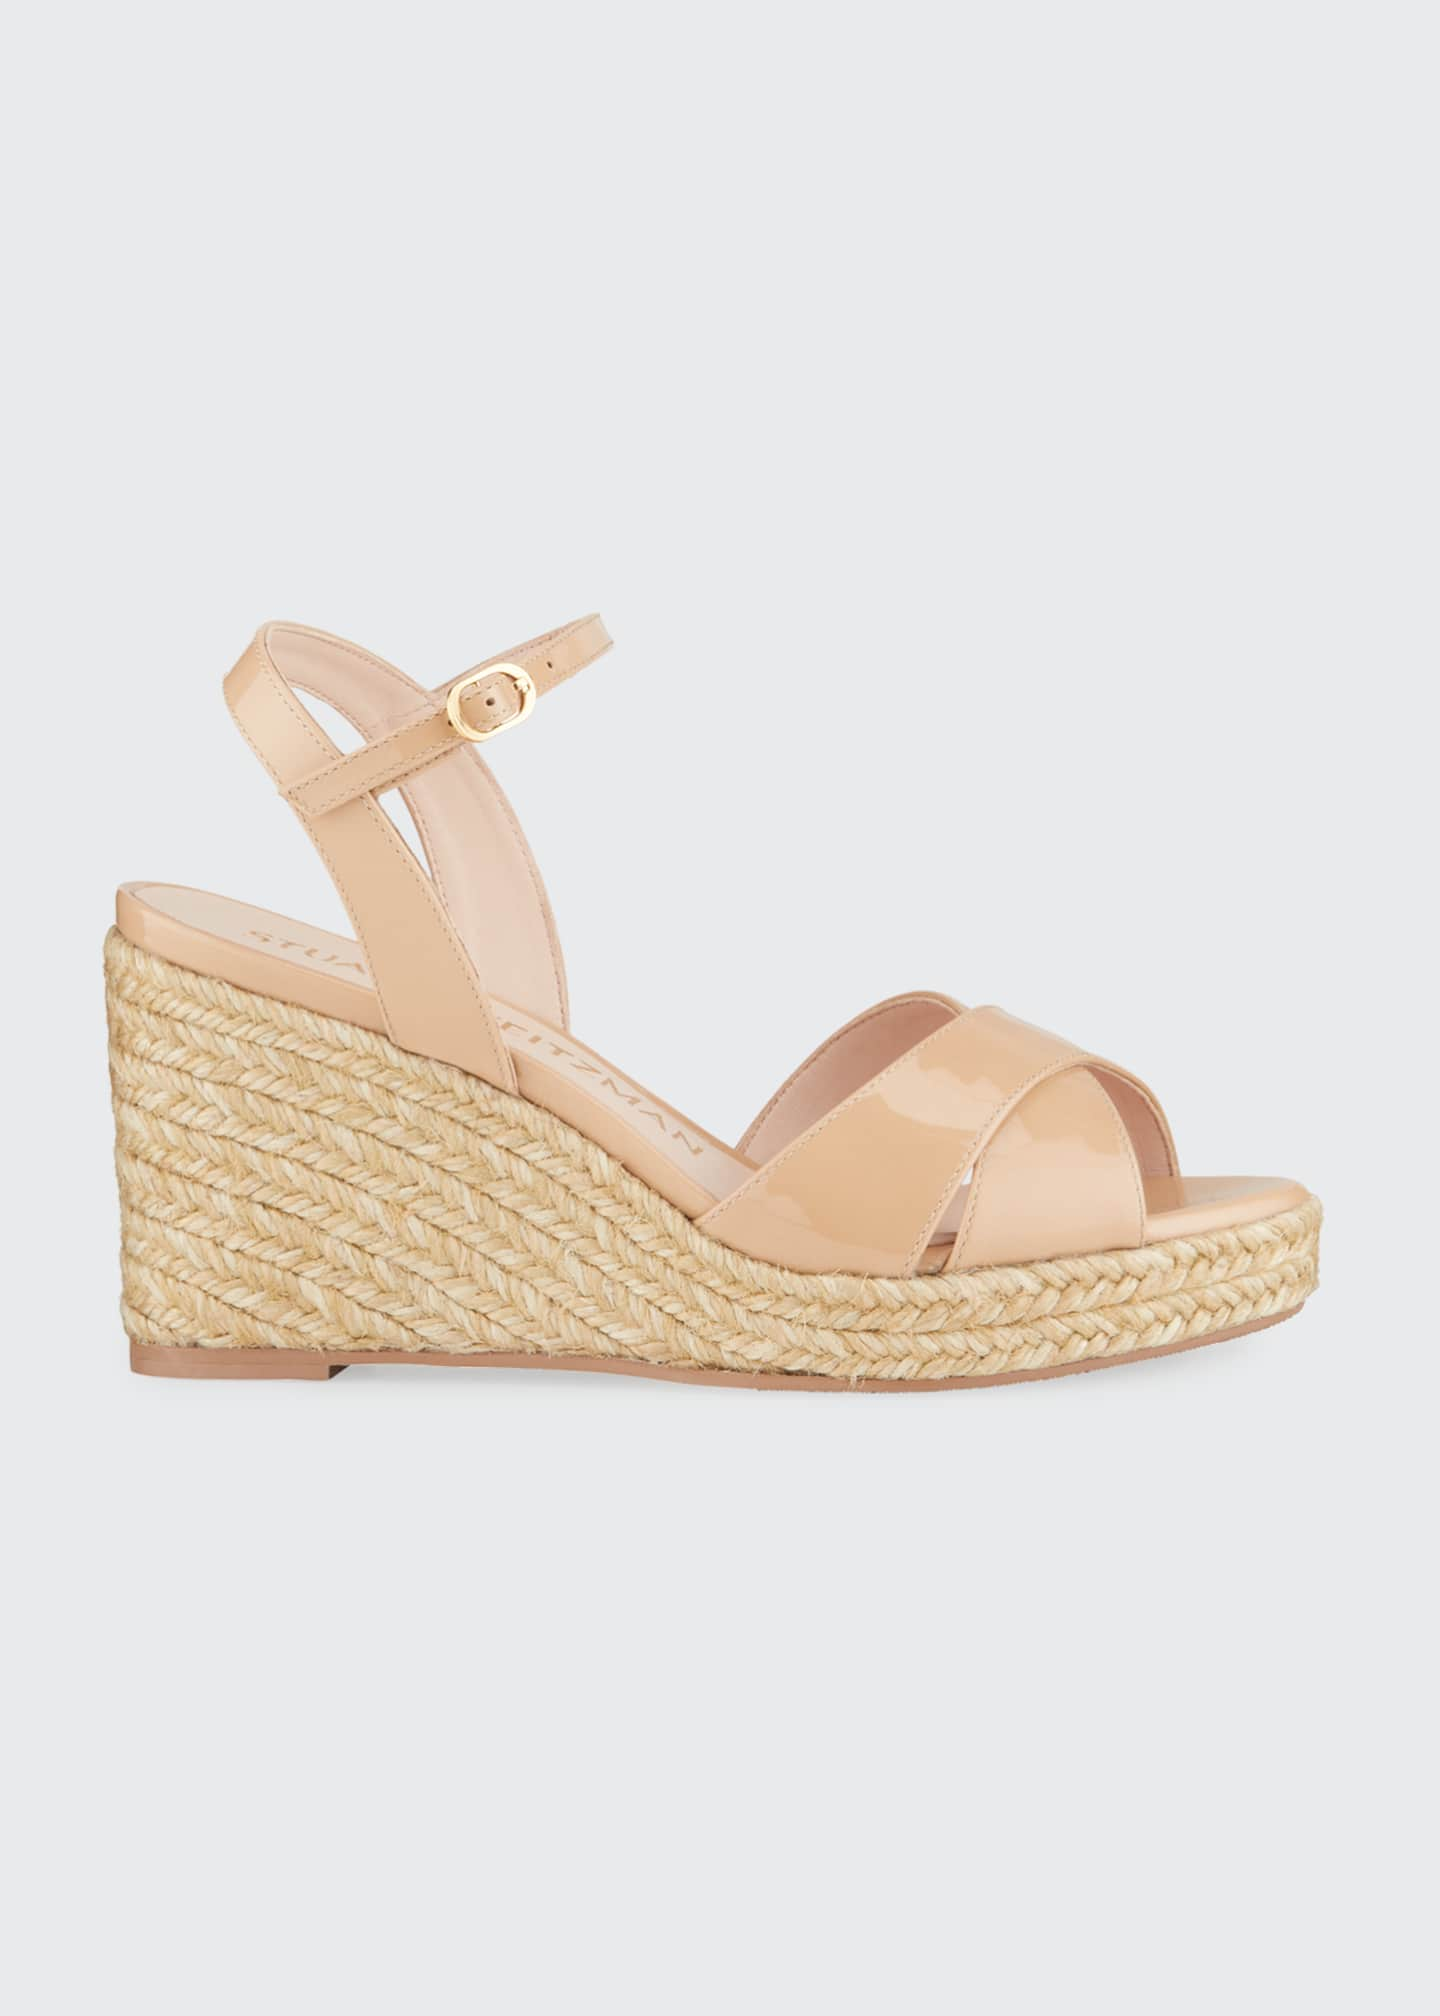 Image 1 of 5: Rosemarie Patent Leather Wedge Espadrille Sandals